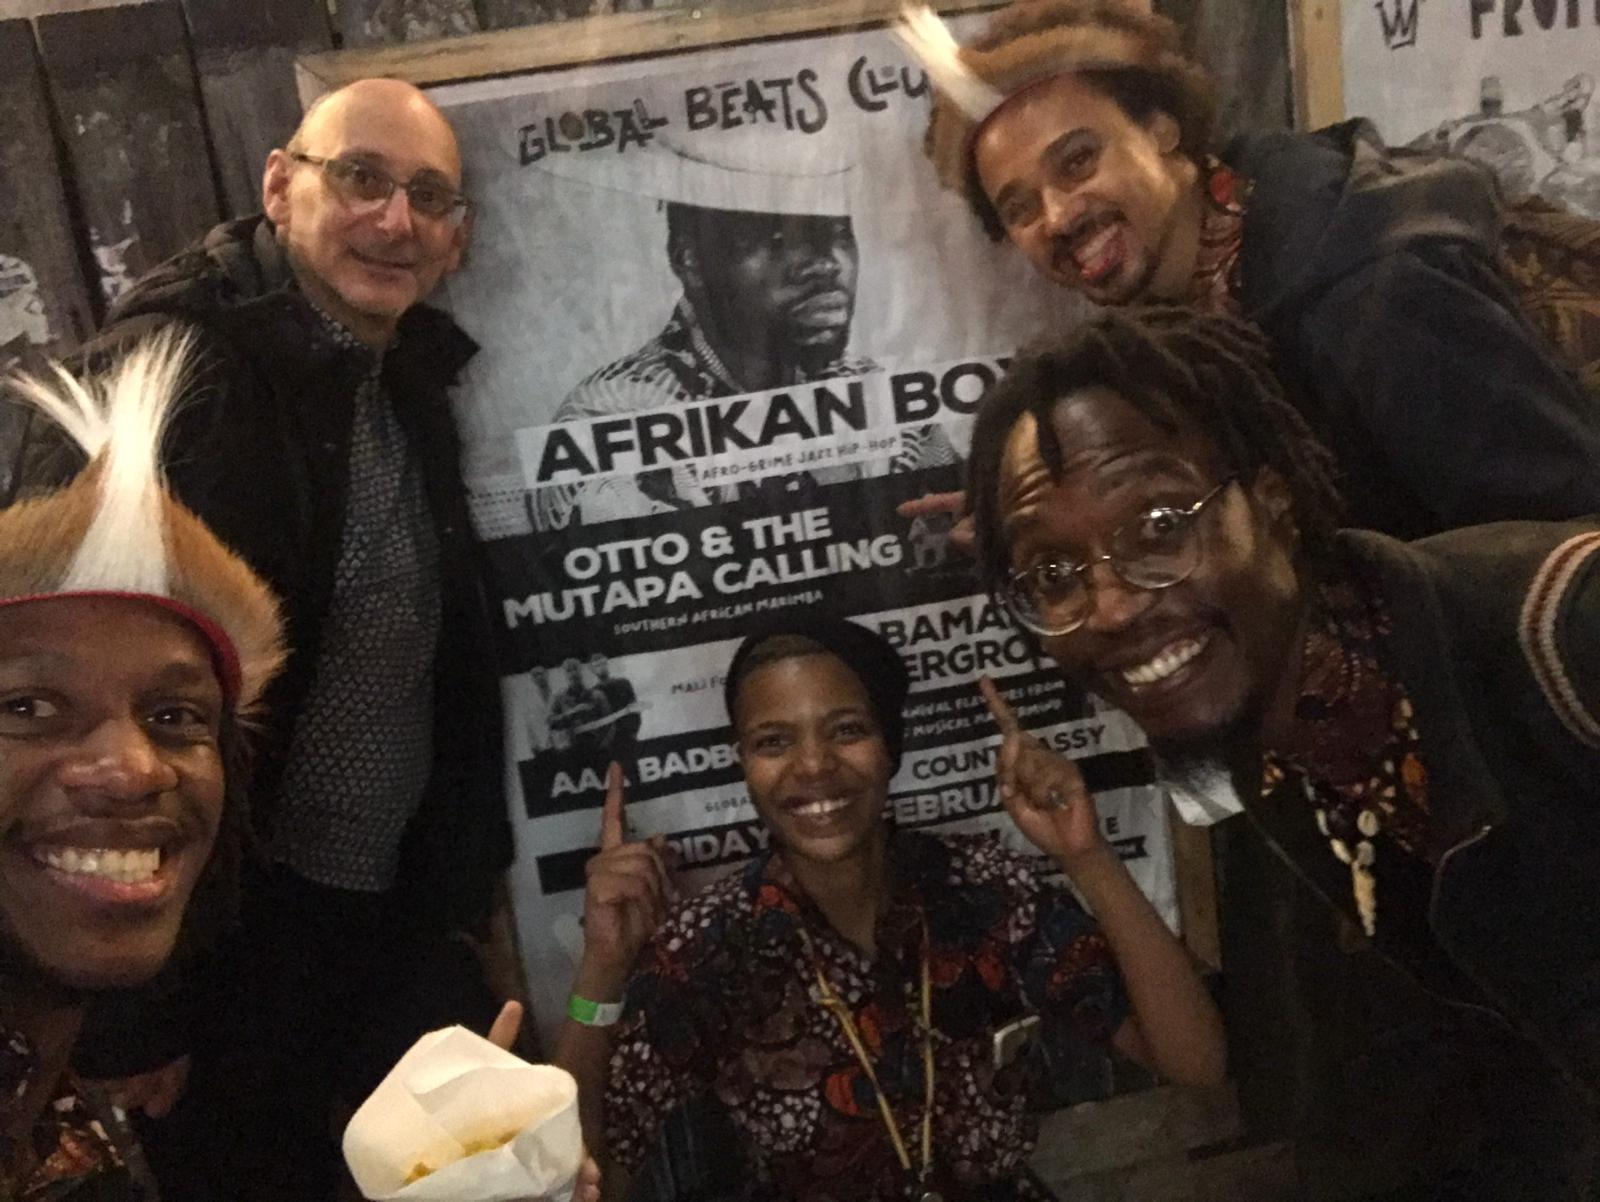 Otto And The Mutapa Calling with Bamako Underground at Global Beats Club Hootananny Supportung Afrikan Boy